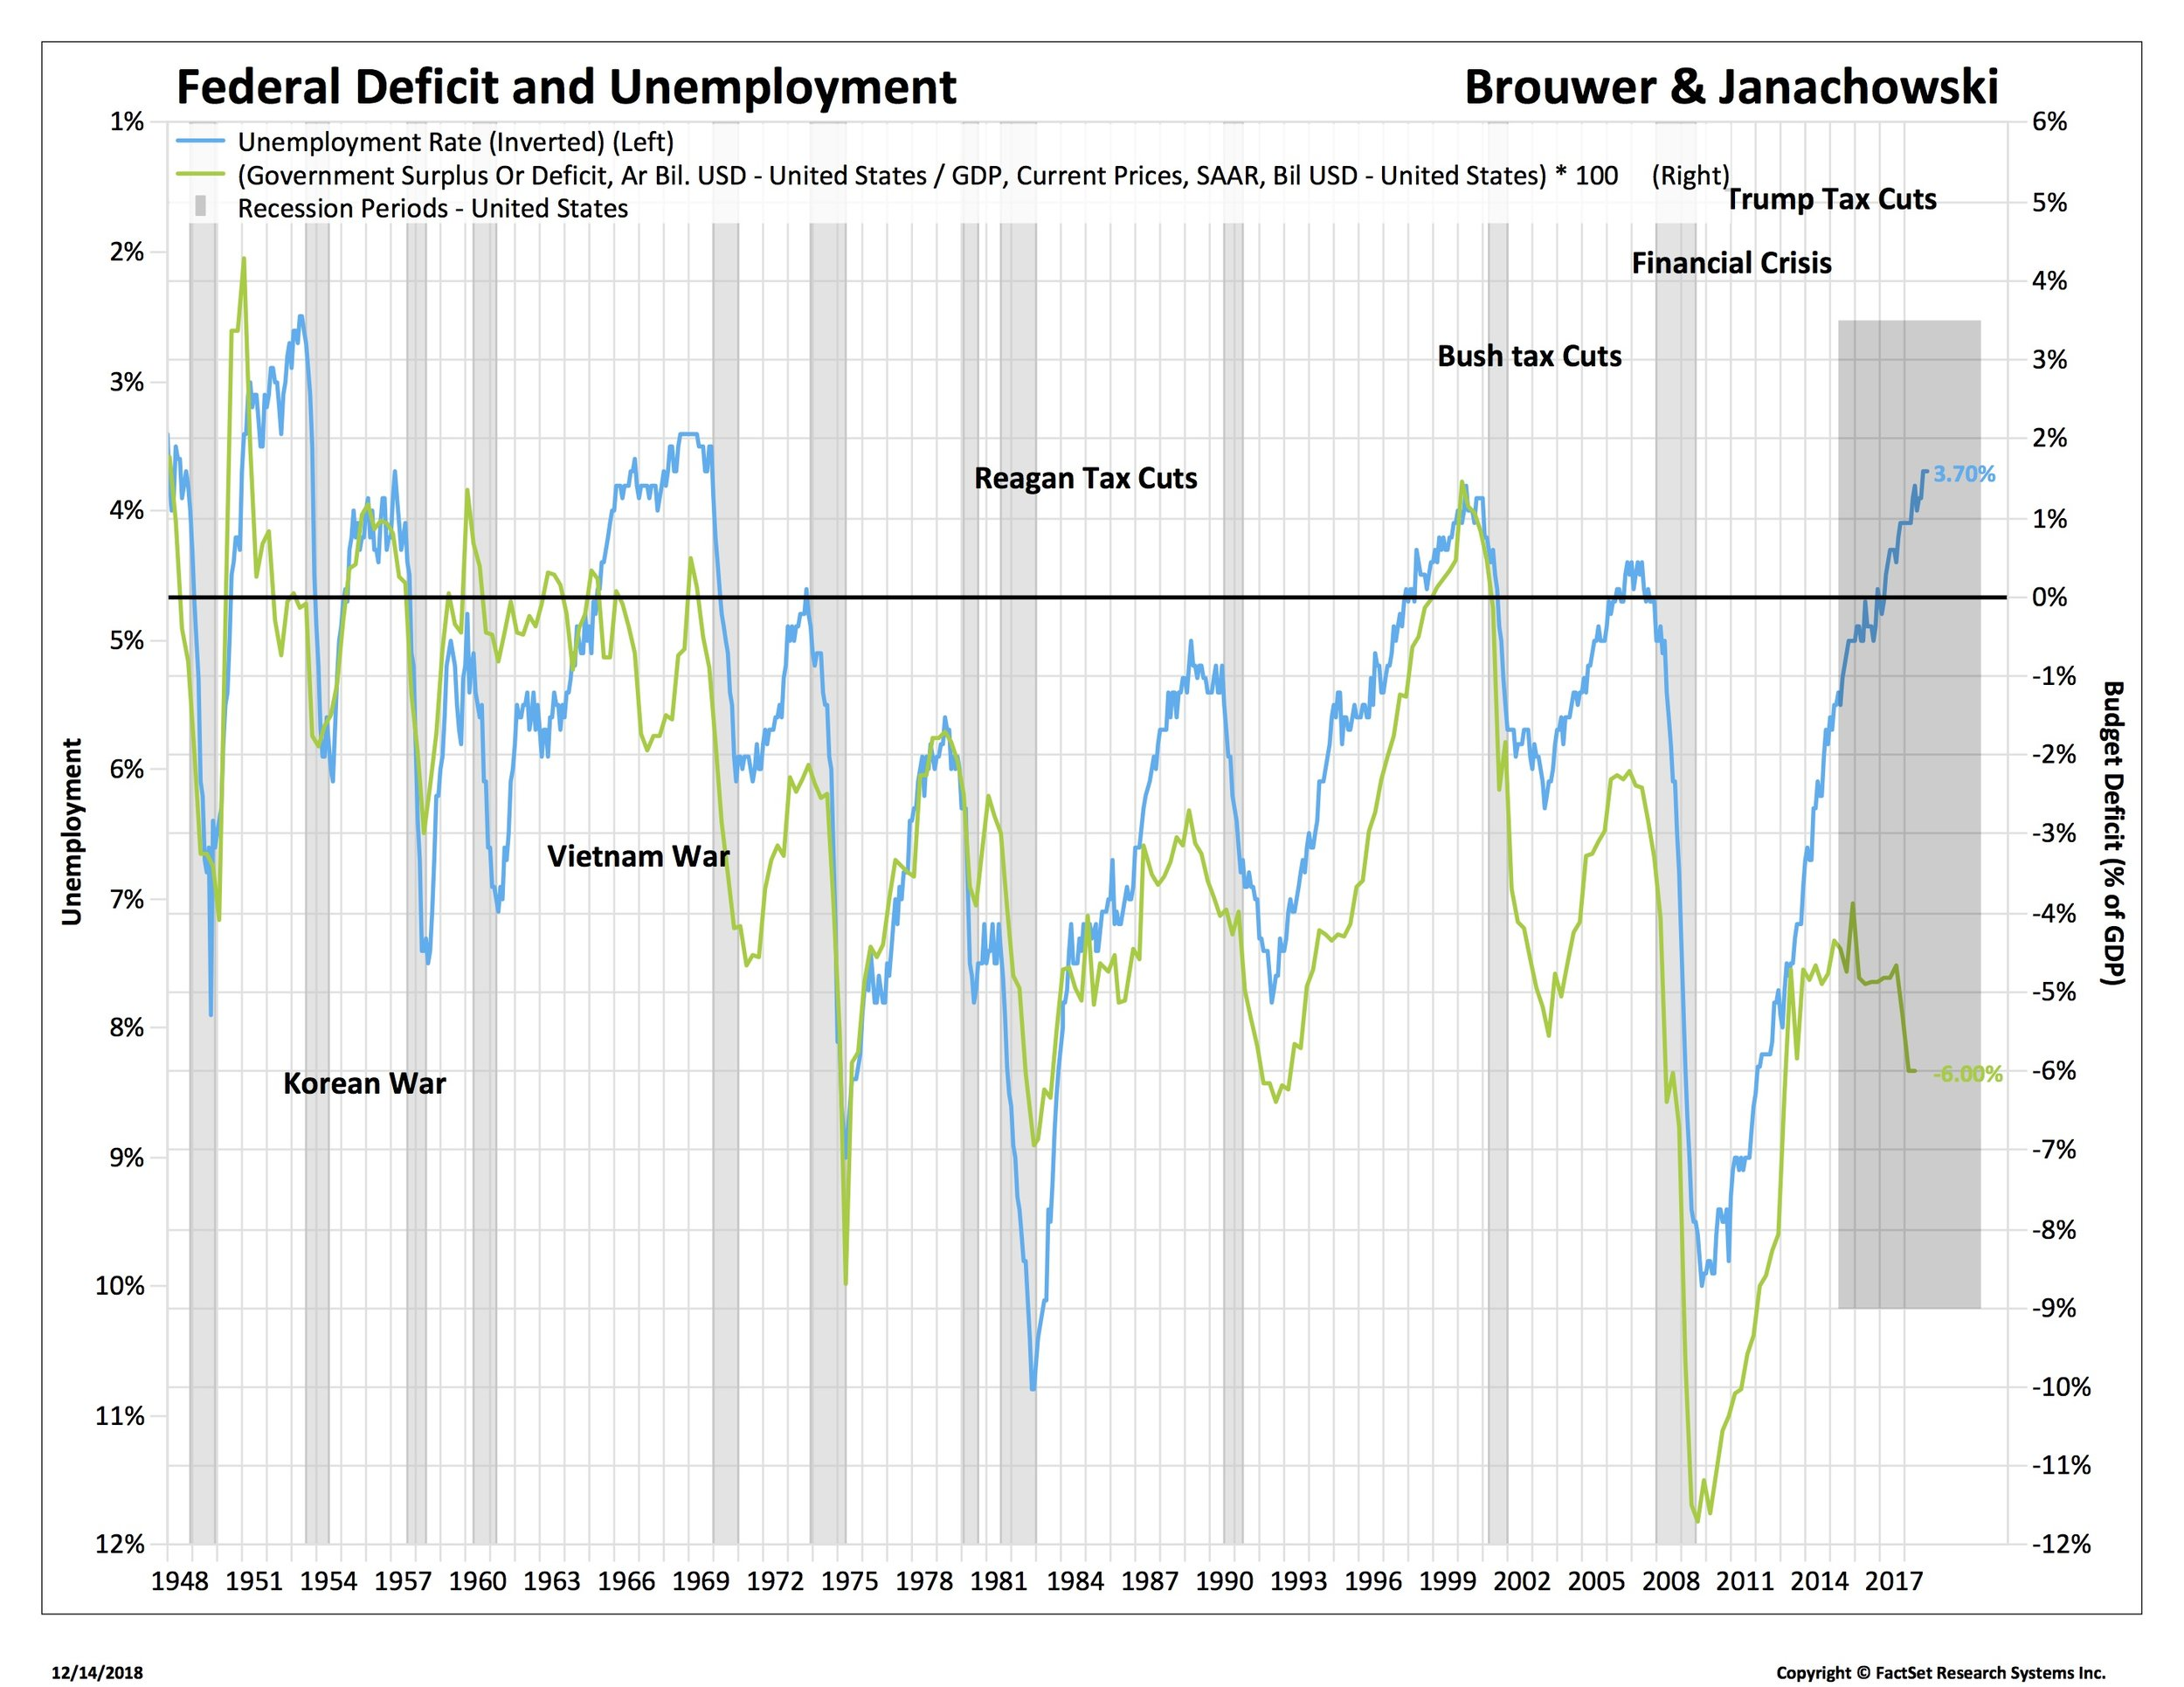 1 deficits and employment_SP50-USA.jpg